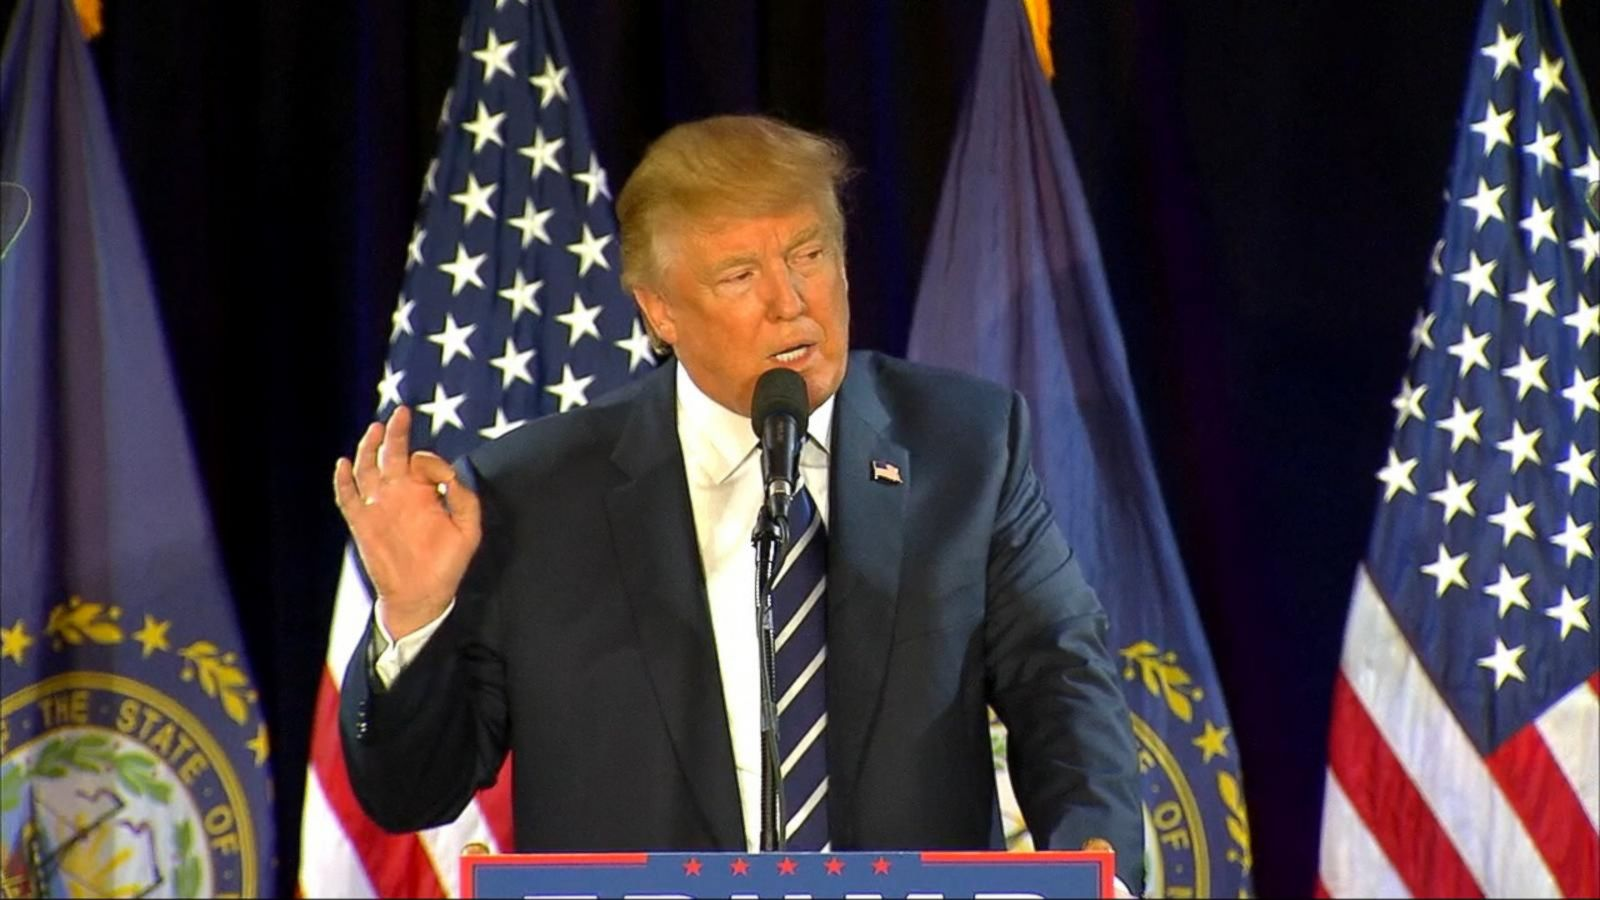 VIDEO: Donald Trump Pounces on Hillary Clinton Amid Reports of FBI Investigation Over Emails